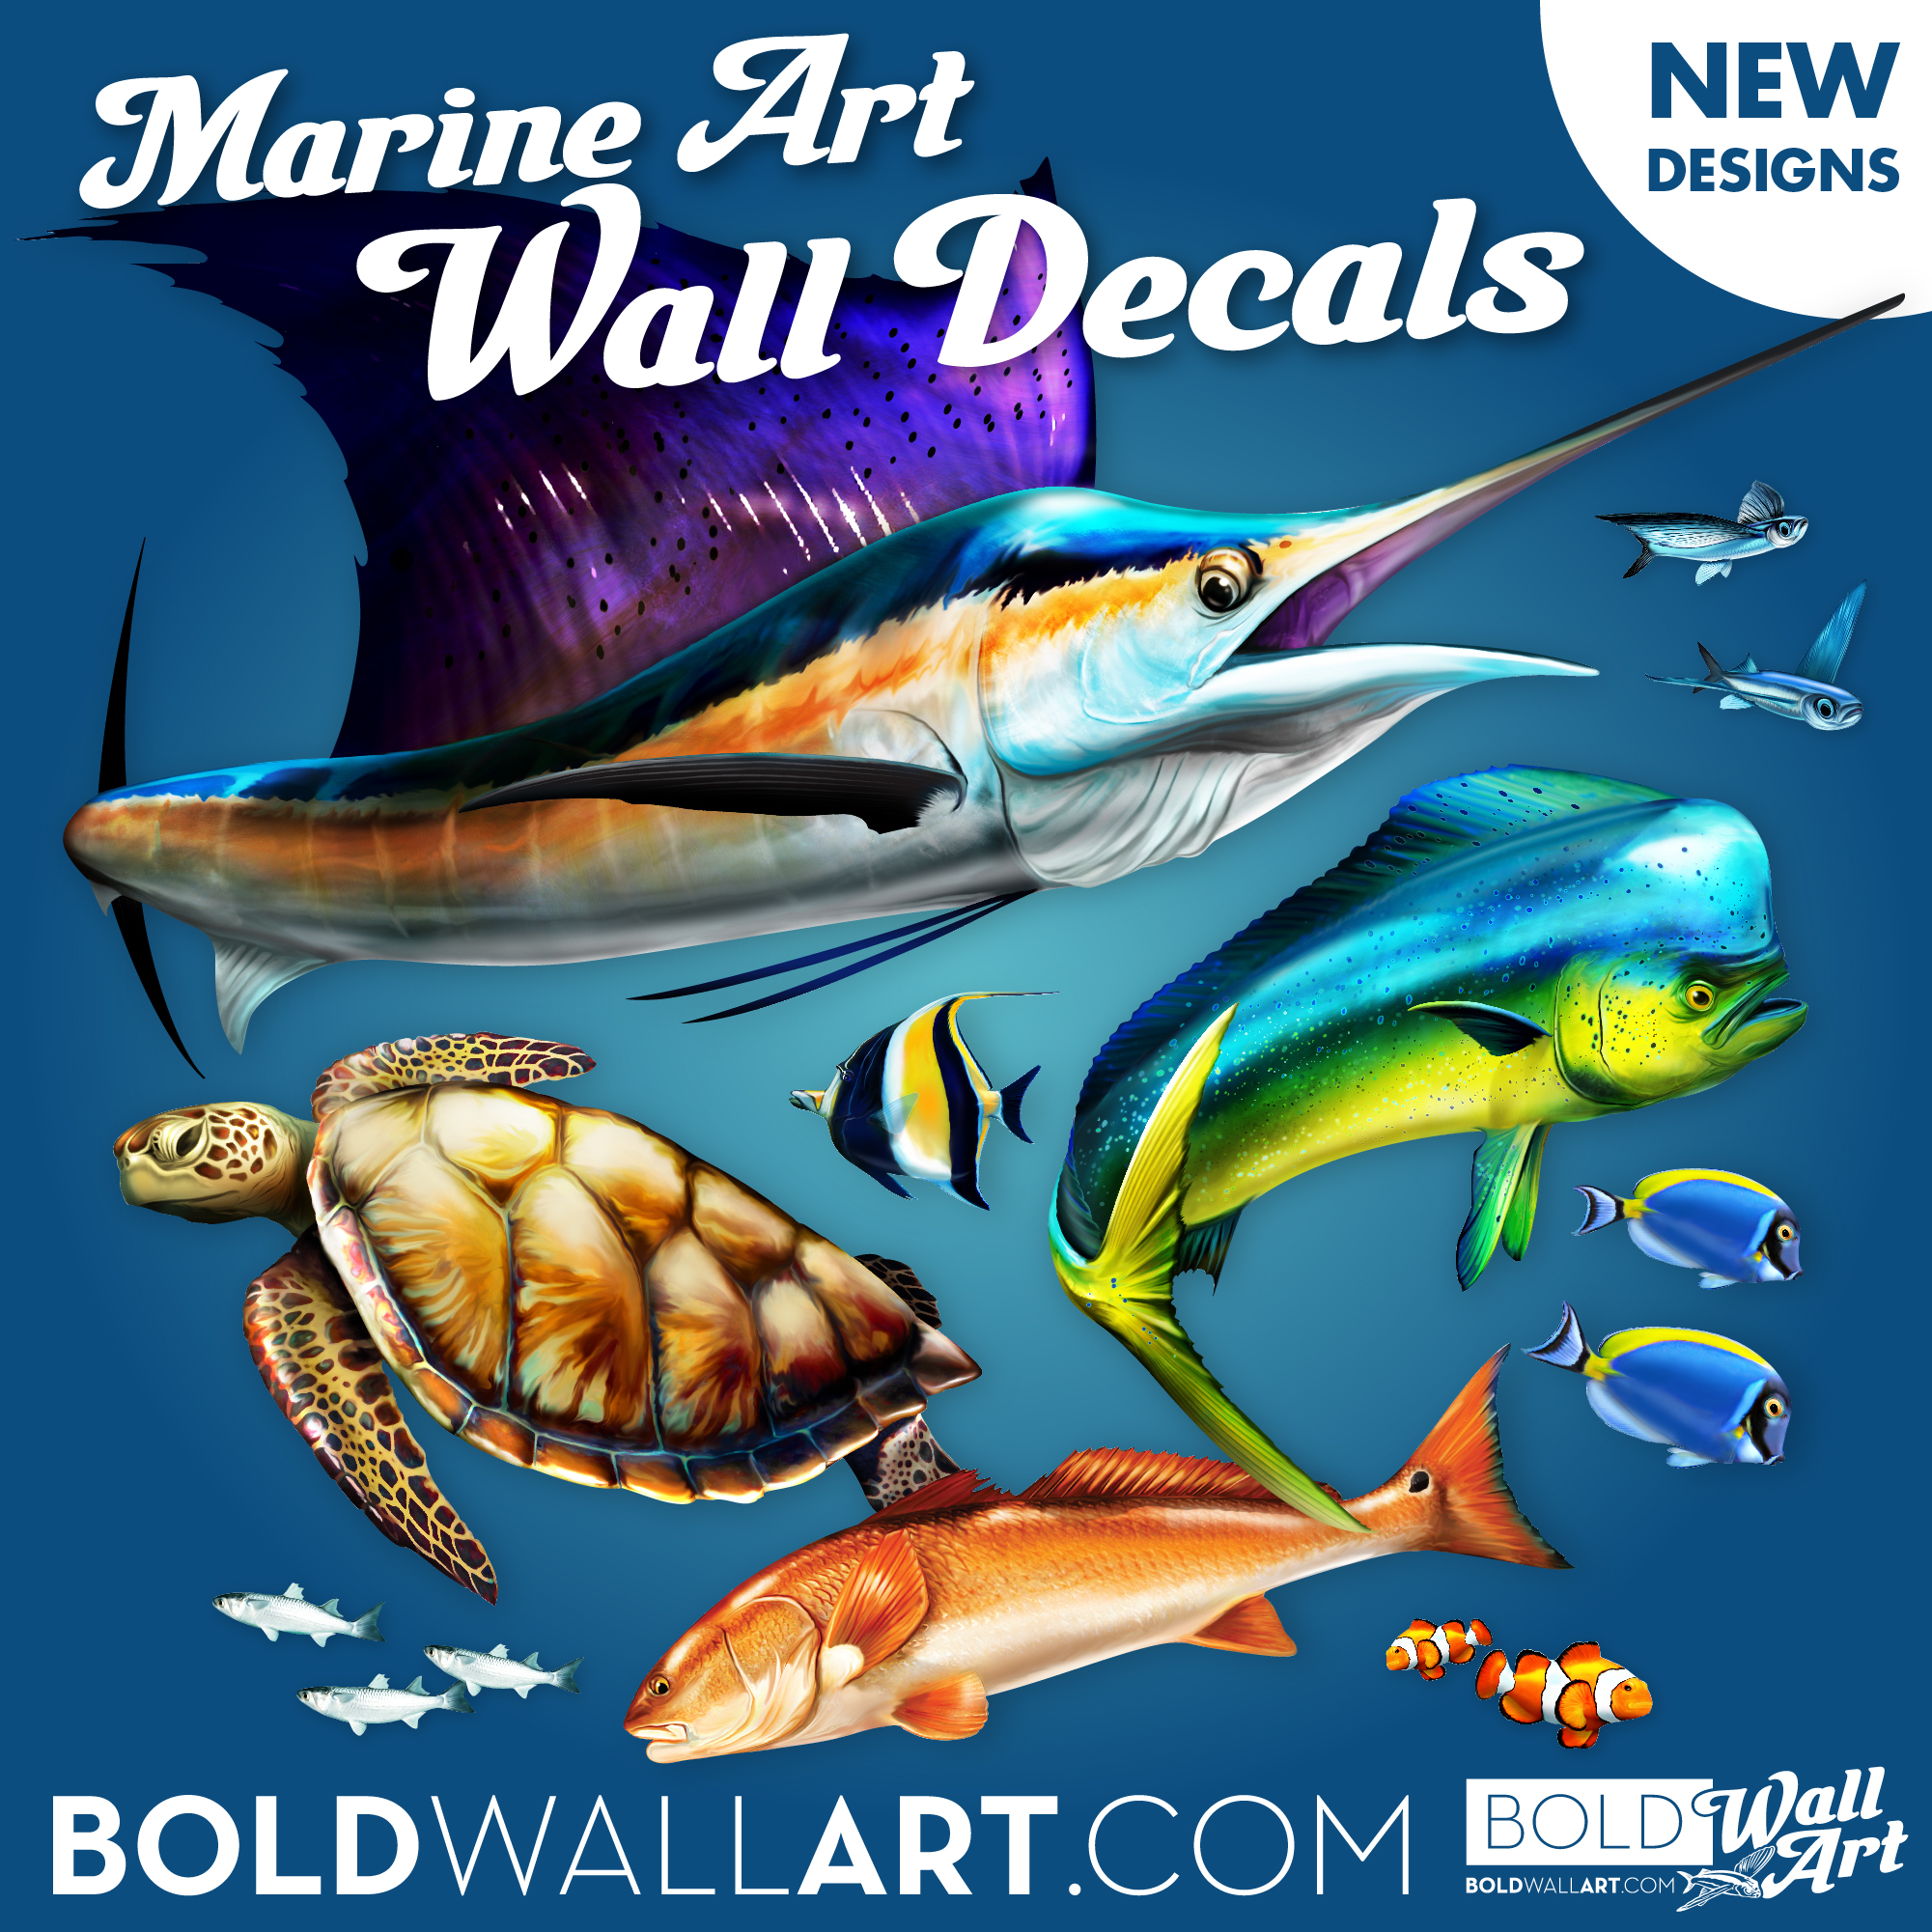 Marine Art Wall Deccals New Products